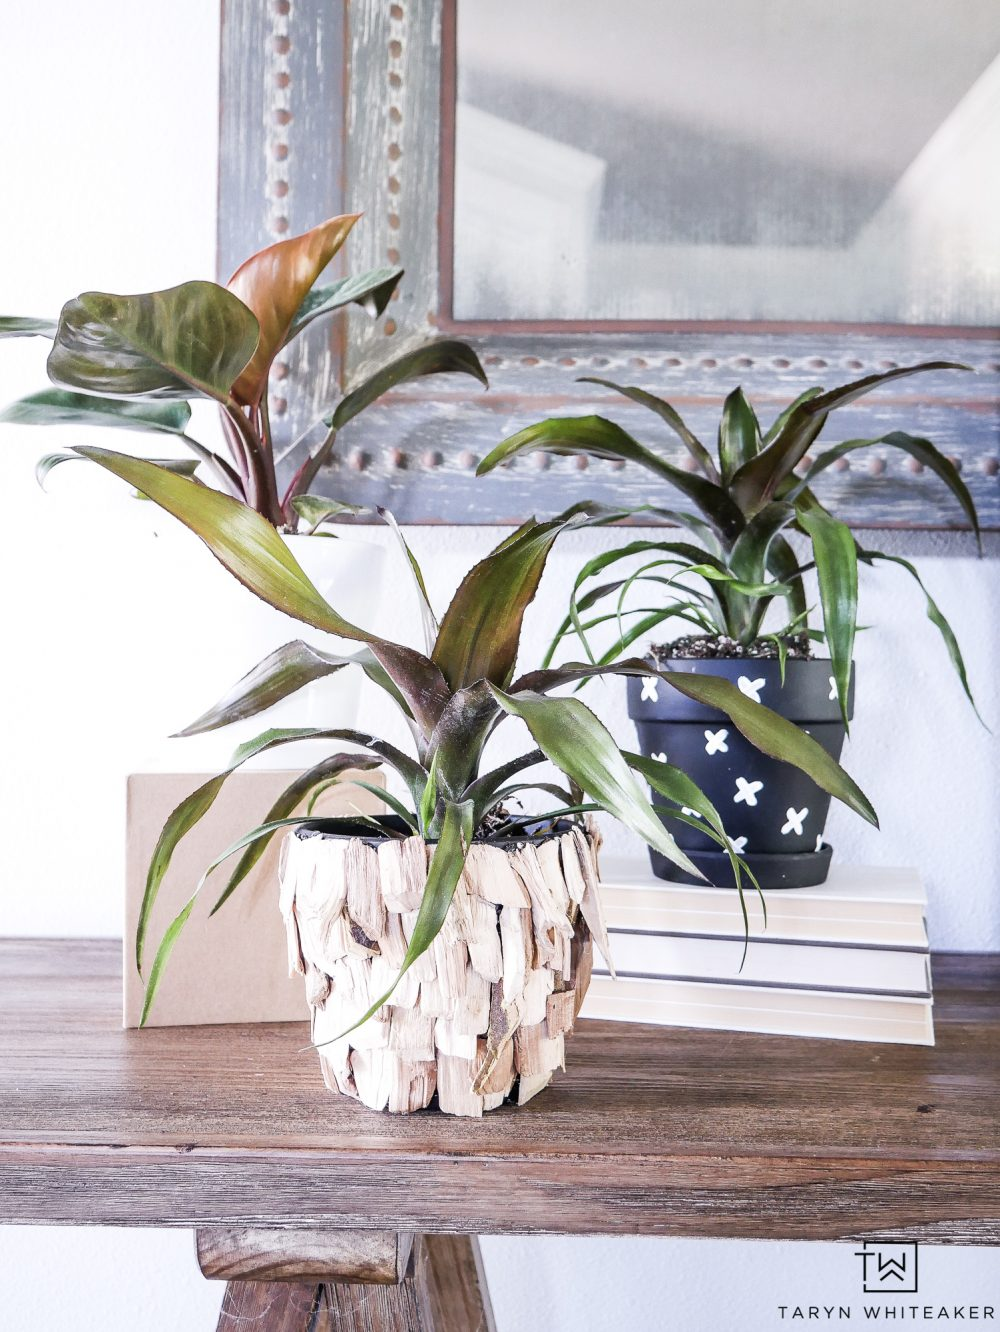 These DIY Indoor Plant Pots have such a great boho chic look to them! The wood chip pot gives it a great topical look.